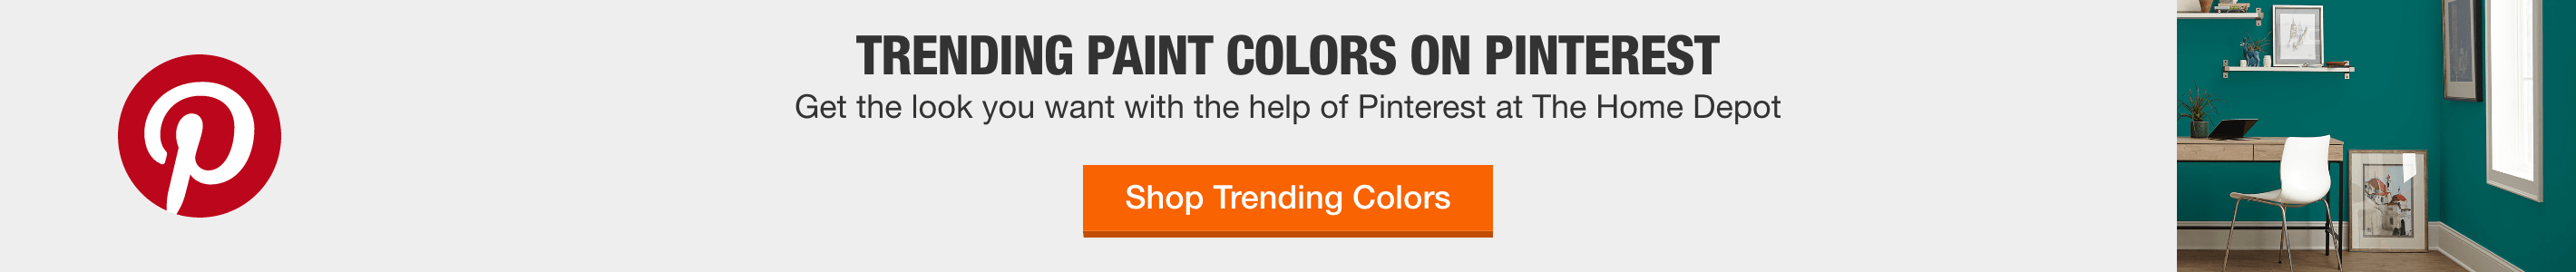 Trending Paint colors on Pinterest Get the look you want with the help of Pinterest at The Home Depot